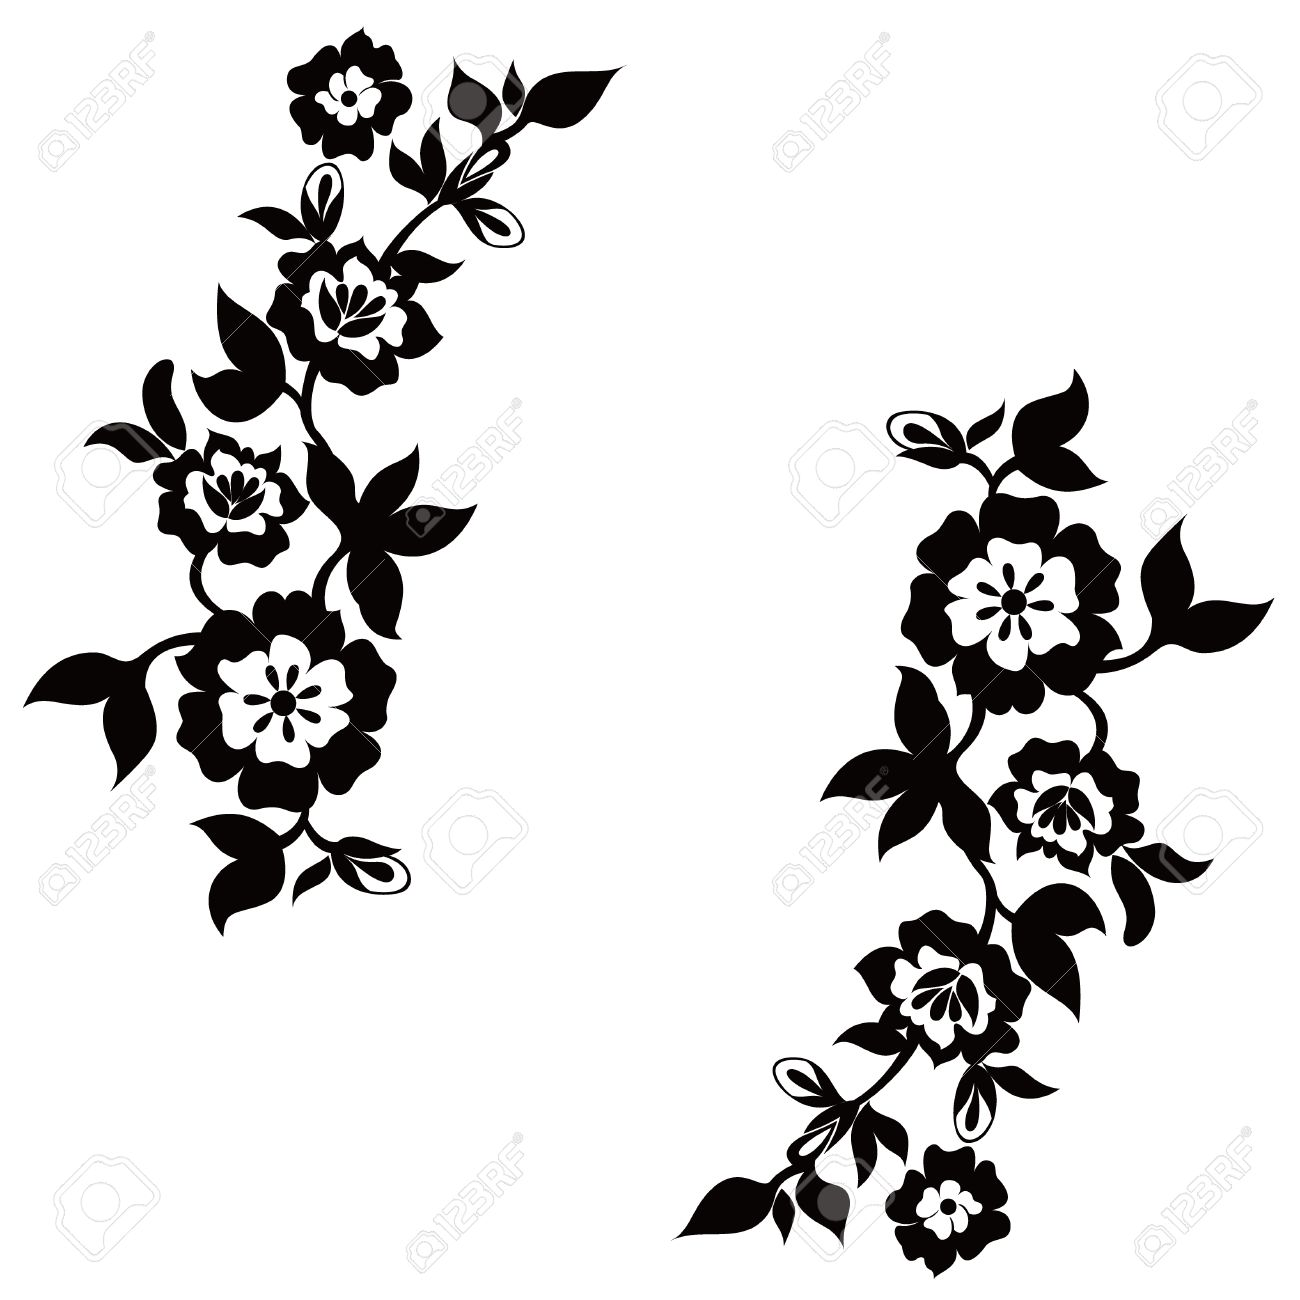 Floral Silhouette Vector.